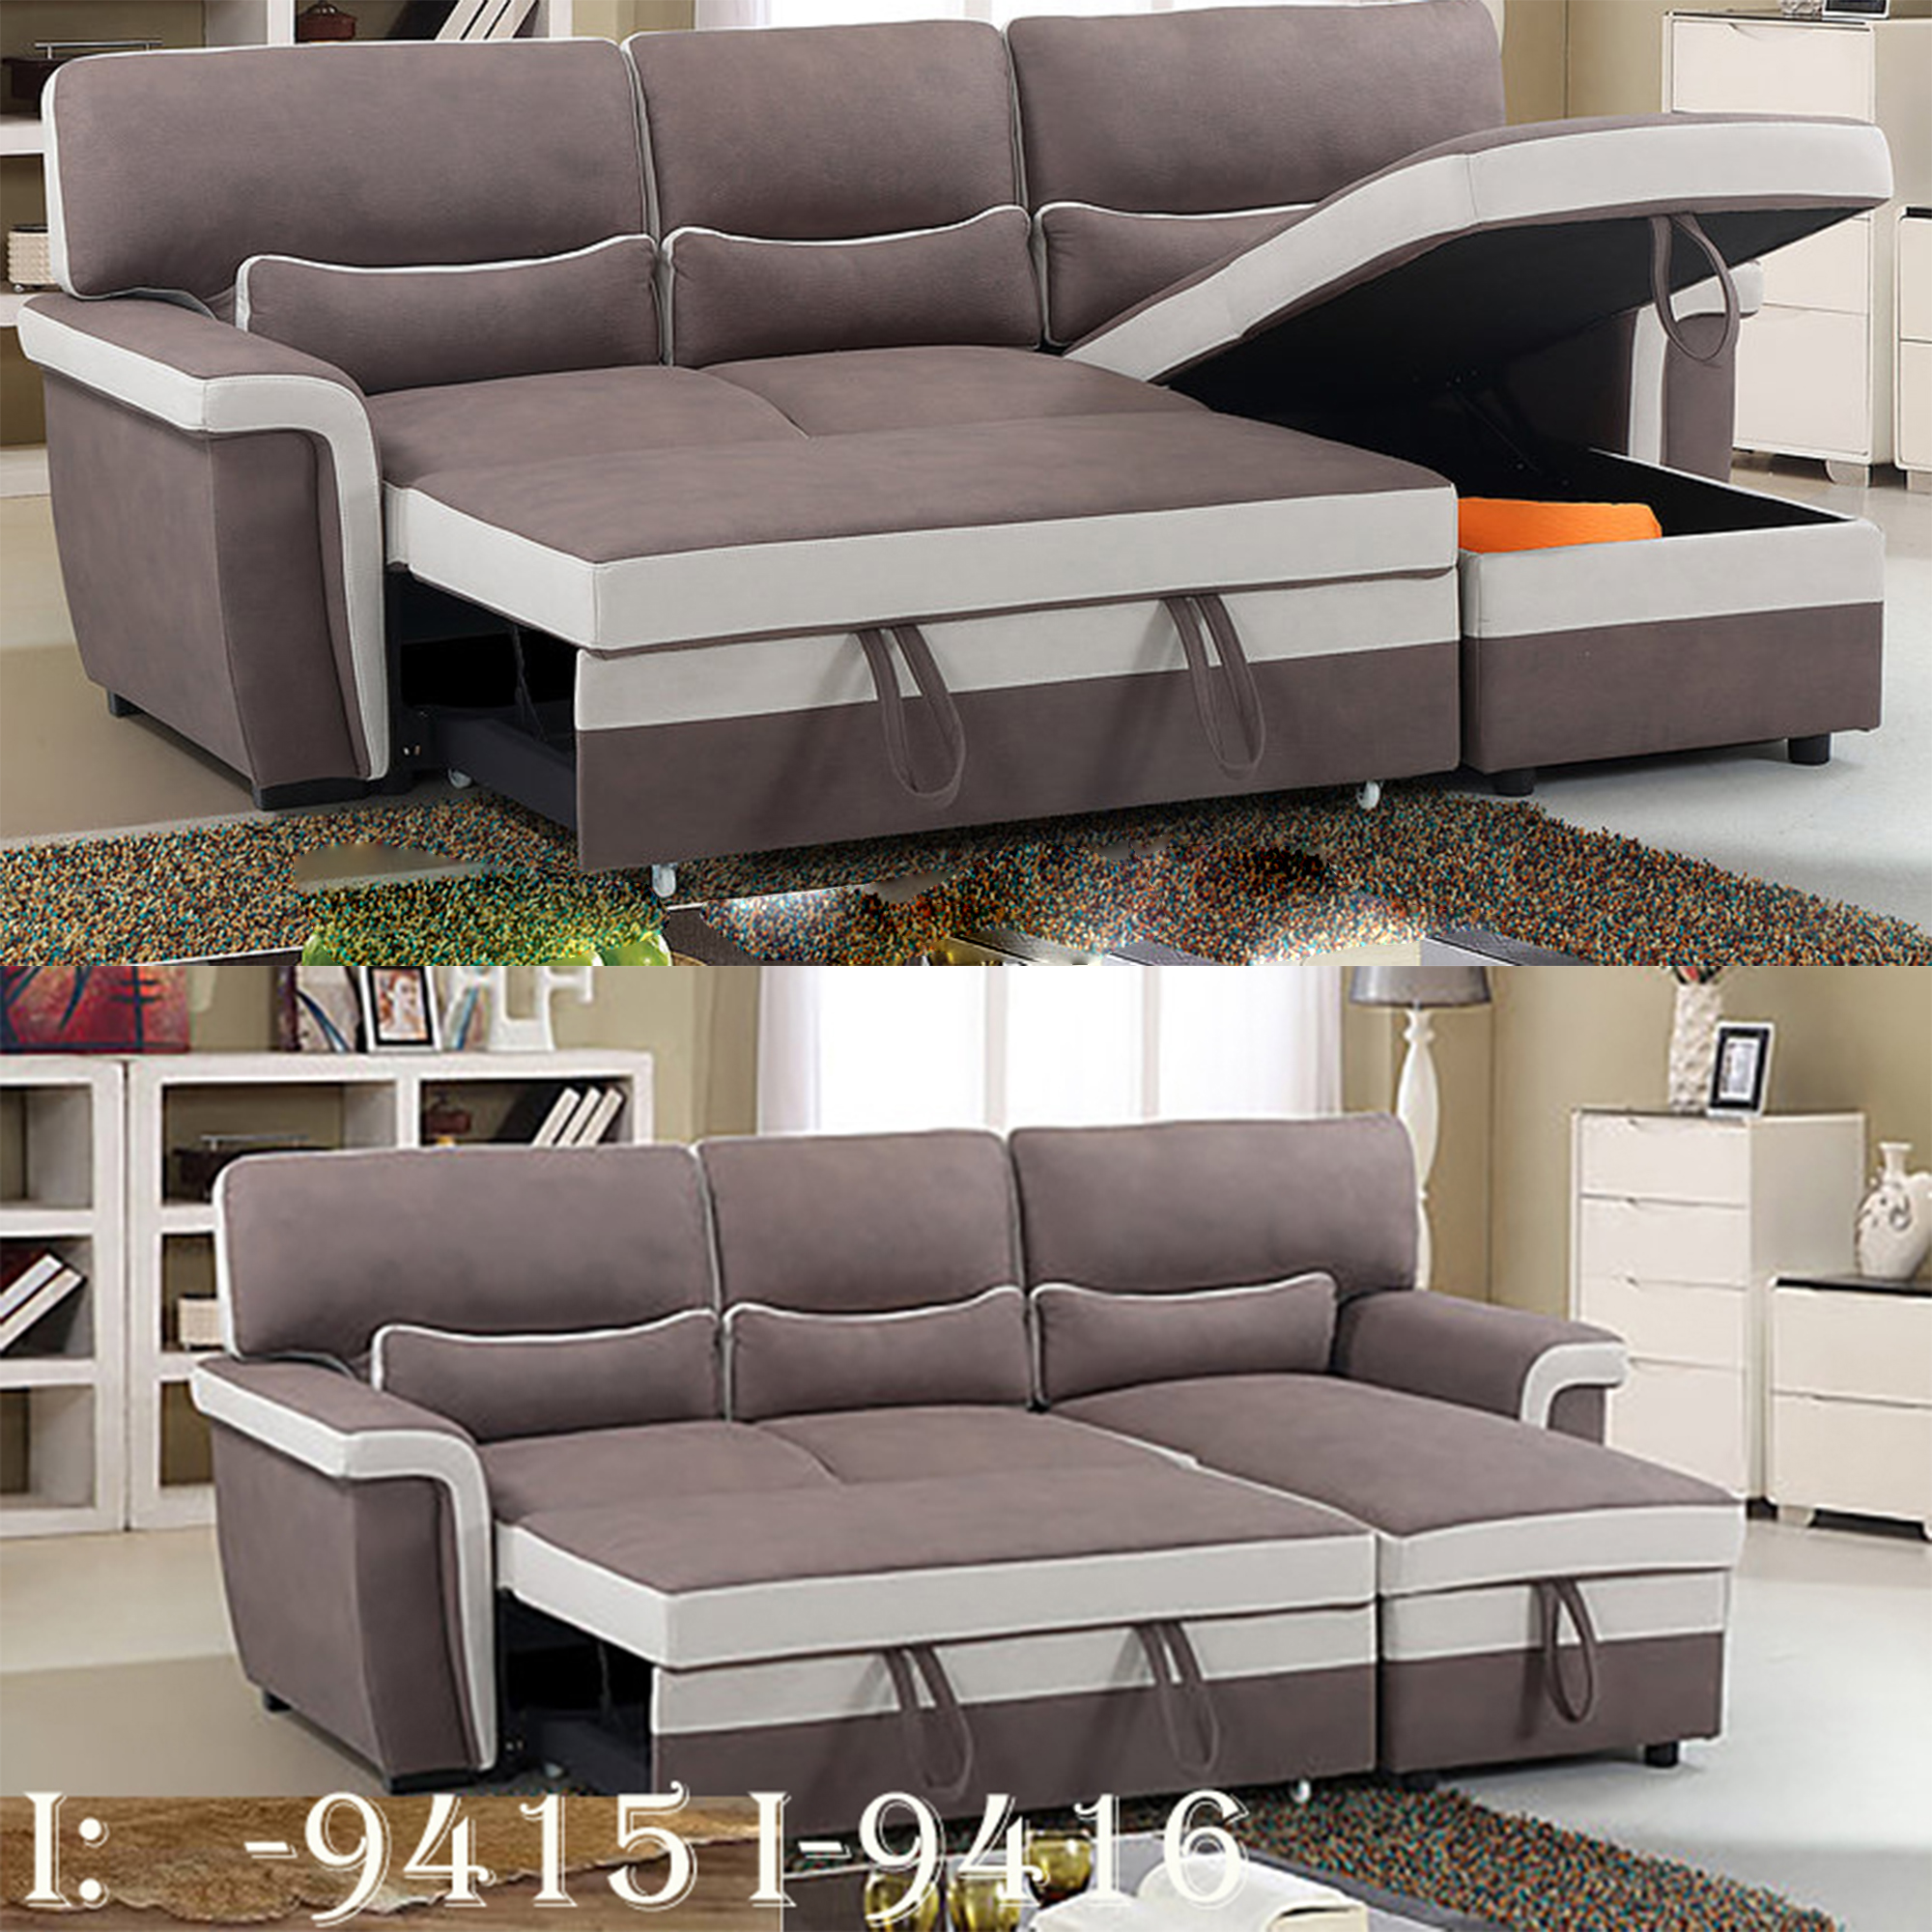 L shaped sofas, modern and classic sofas,